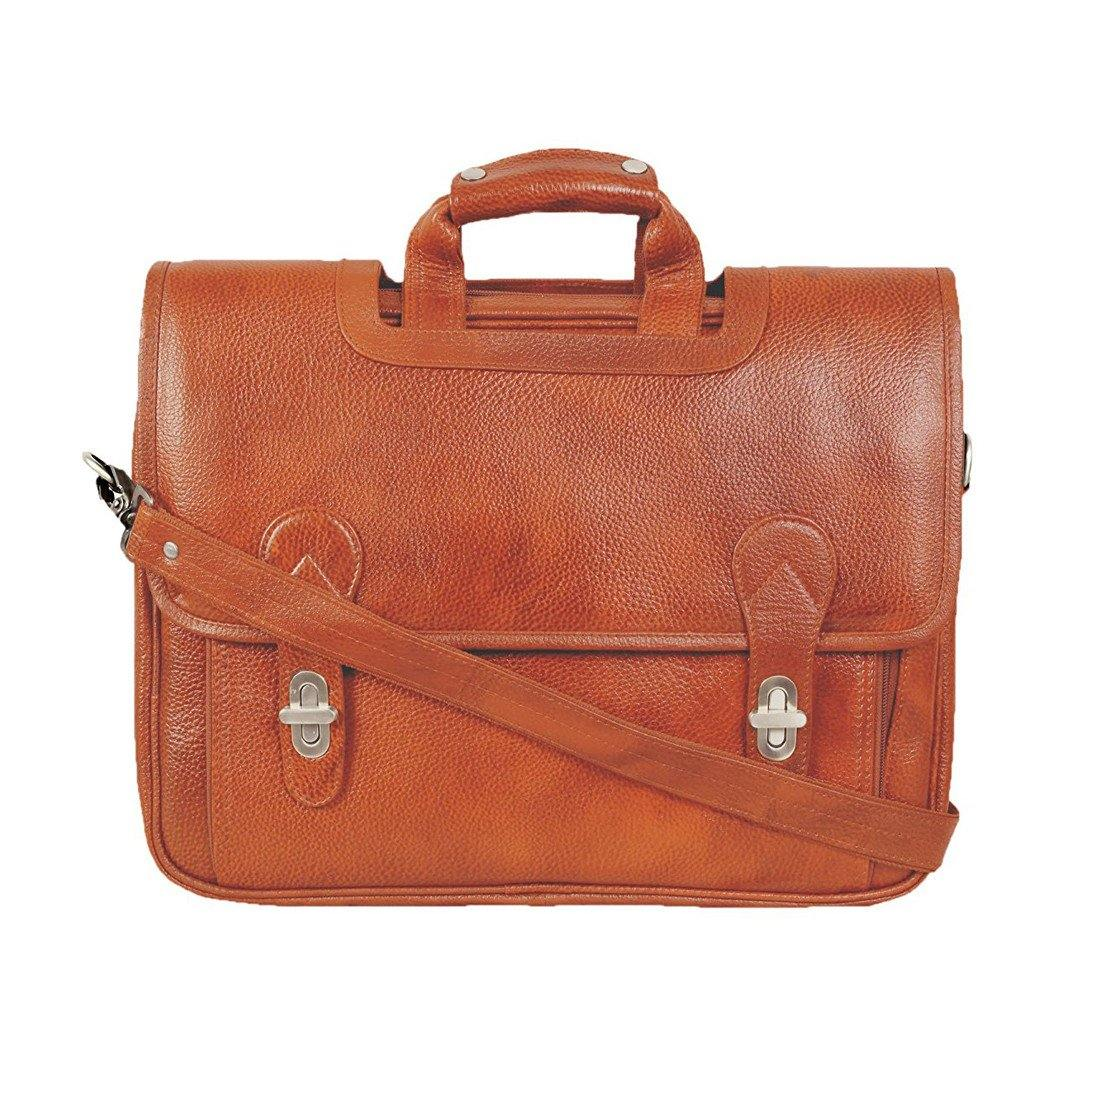 Leather World Genuine Leather Laptop Portfolio Bag 16 inch Tan 7 Liter Tablets / Macbook - #OB1069